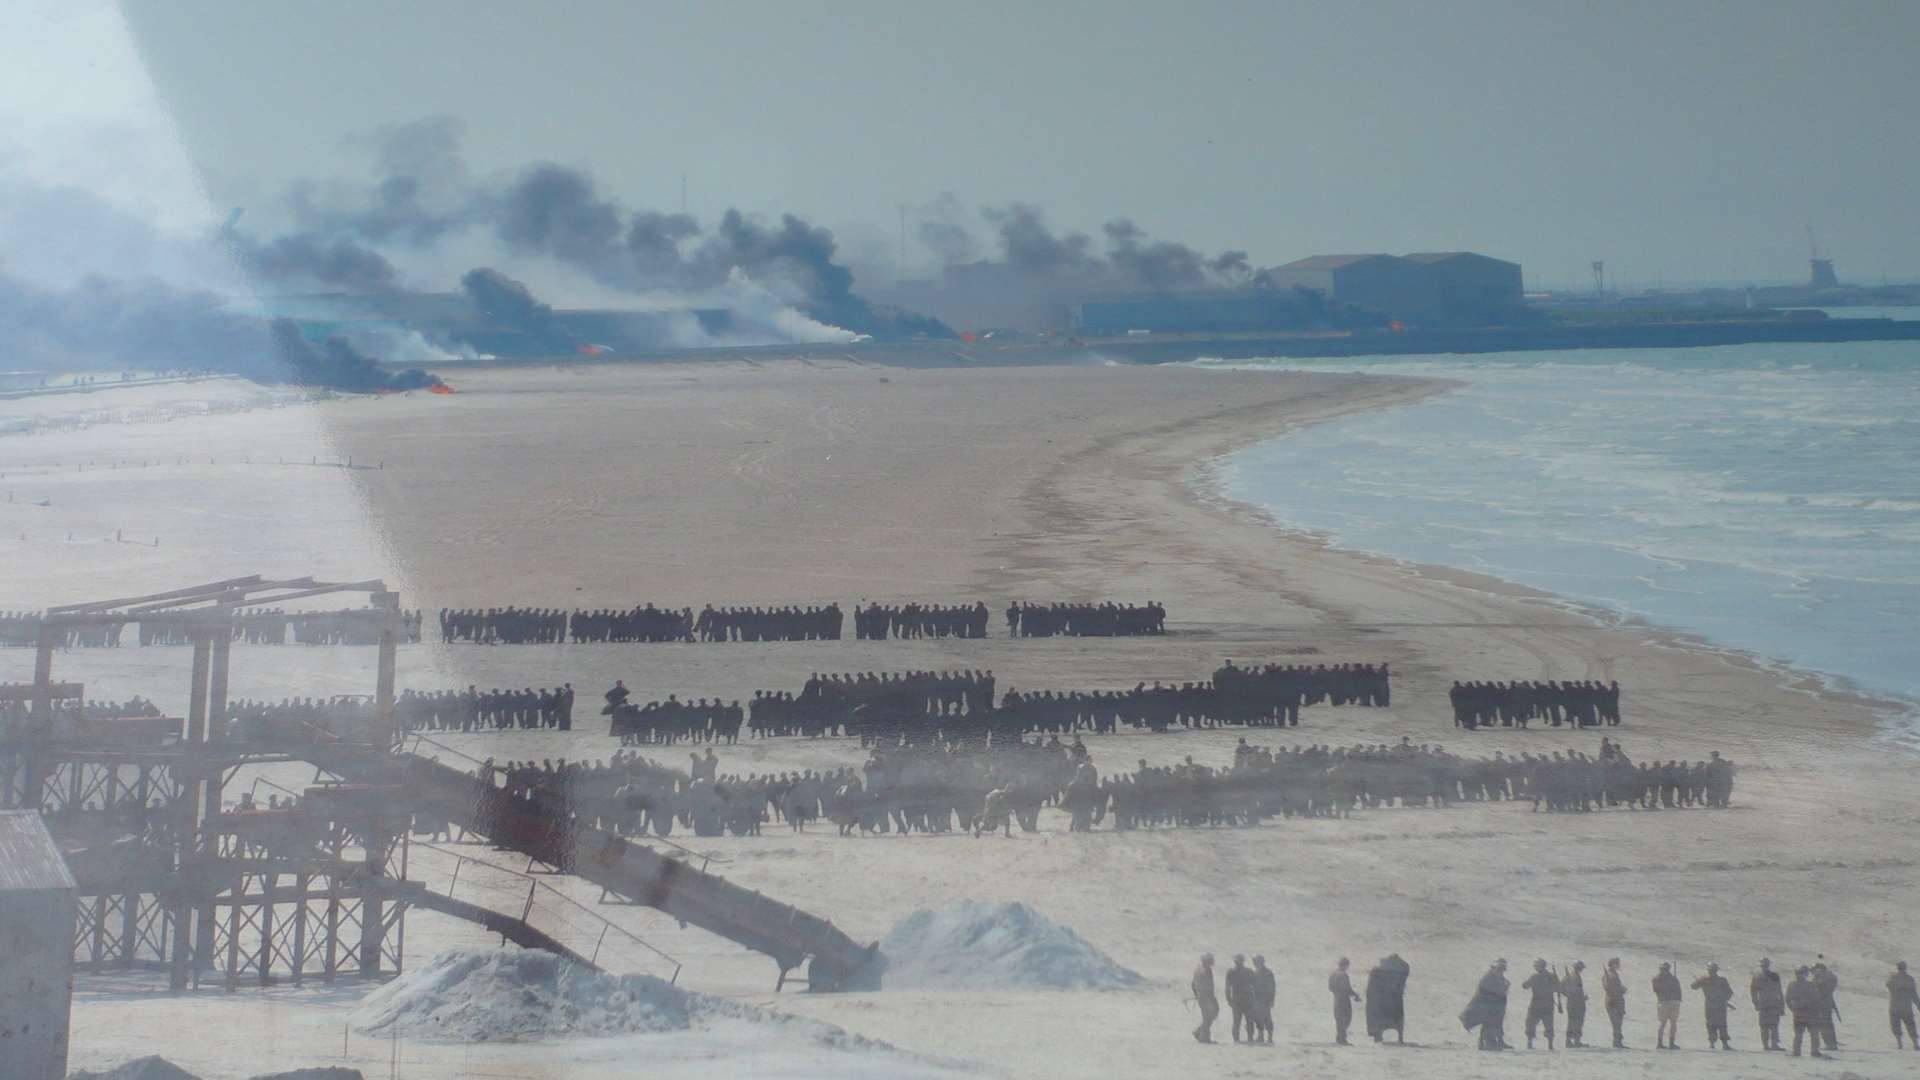 Dunkirk beach was transformed with thousands of extras and factories were made to look on fire for the film.